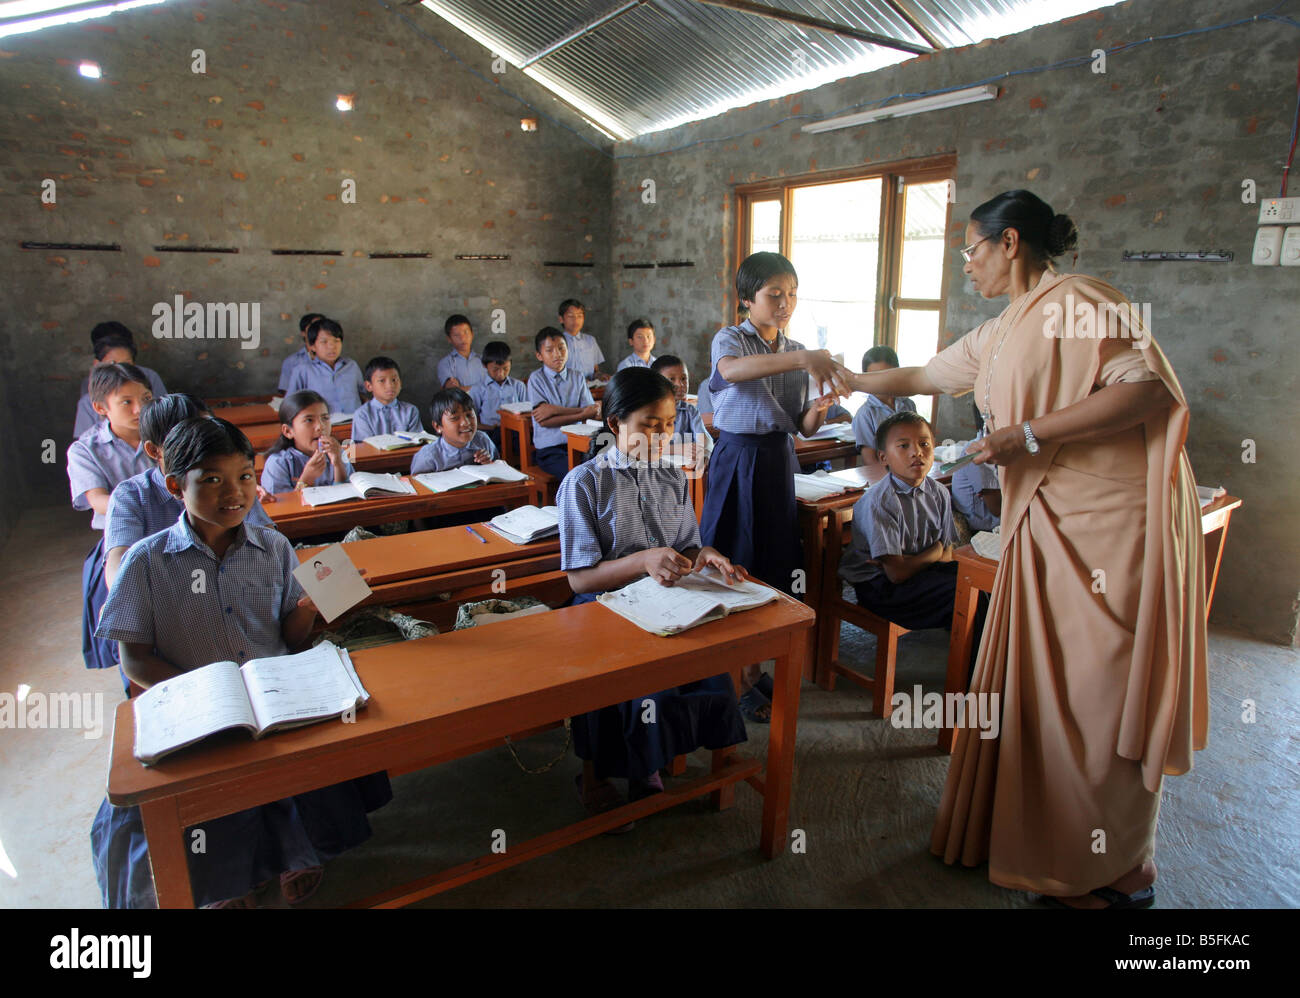 Nepal, lessons in a village school in Jayamangala - Stock Image